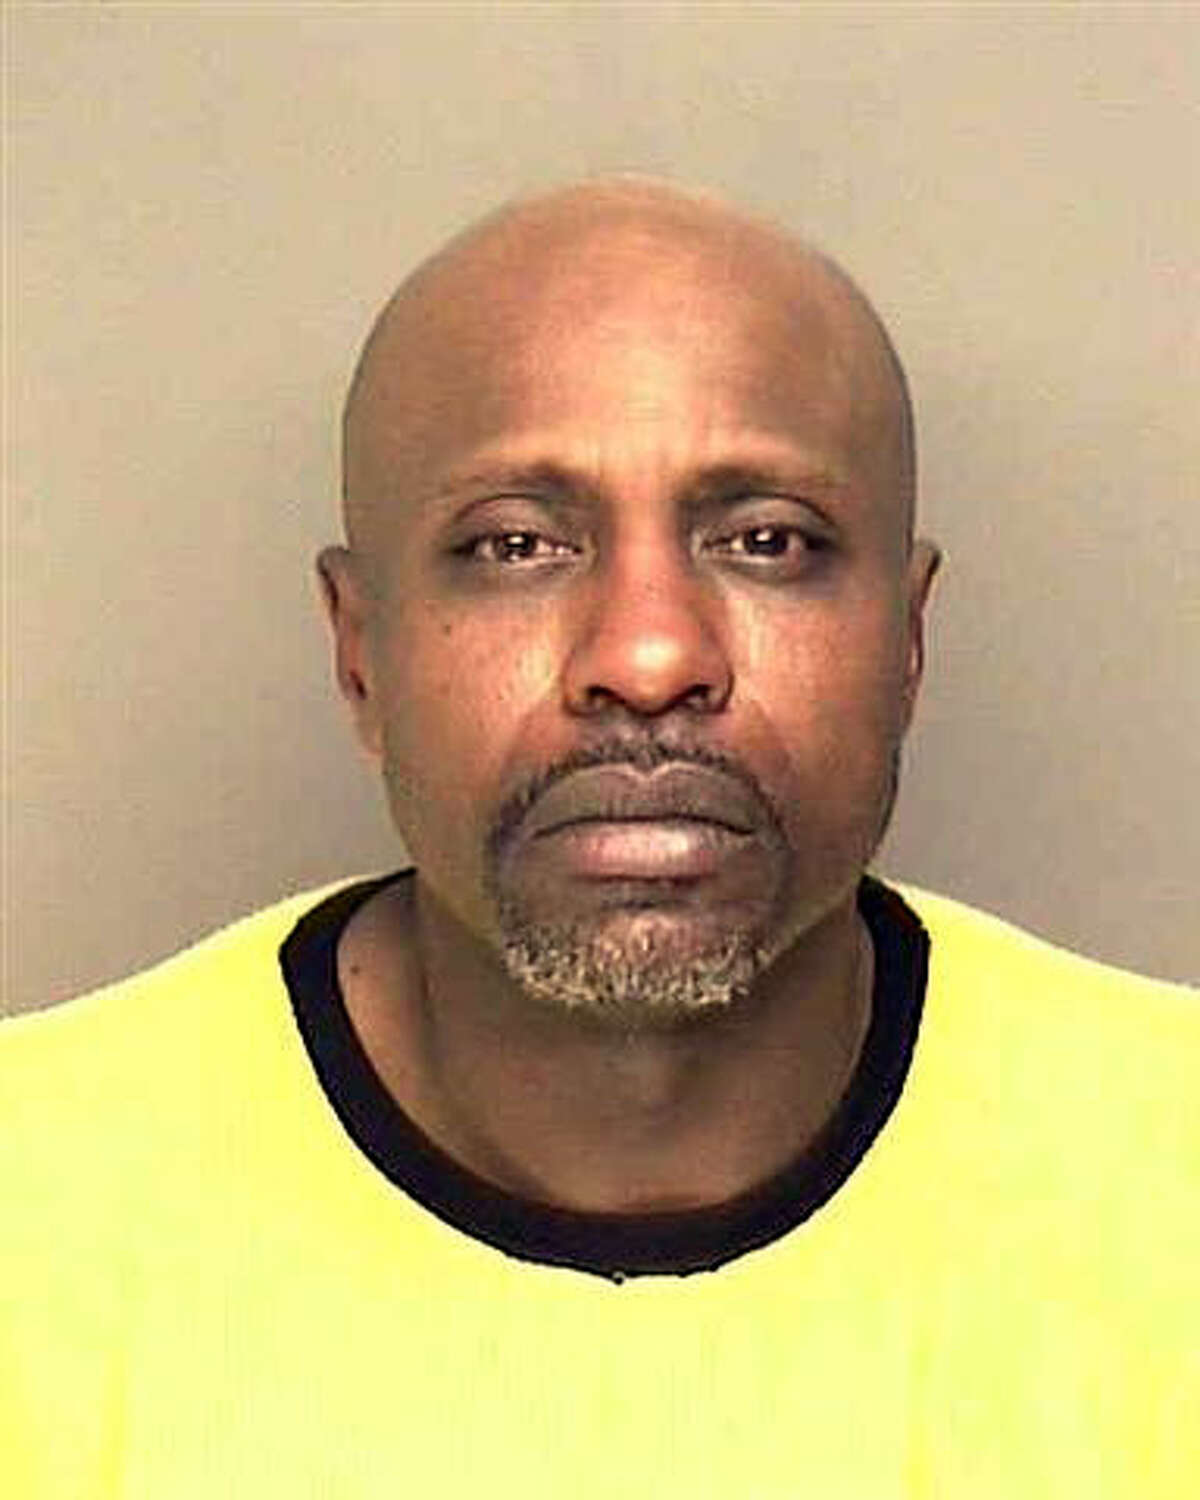 Wilson Cash, 43, a Bridgeport man charged with beating his girlfriend to death last September, was extradited from Port Chester, N.Y. Monday, March 26, 2012 to be arraigned on a murder charge. According to police, Cash is charged with murder for the Sept. 27 death of Christine Jeffreys.